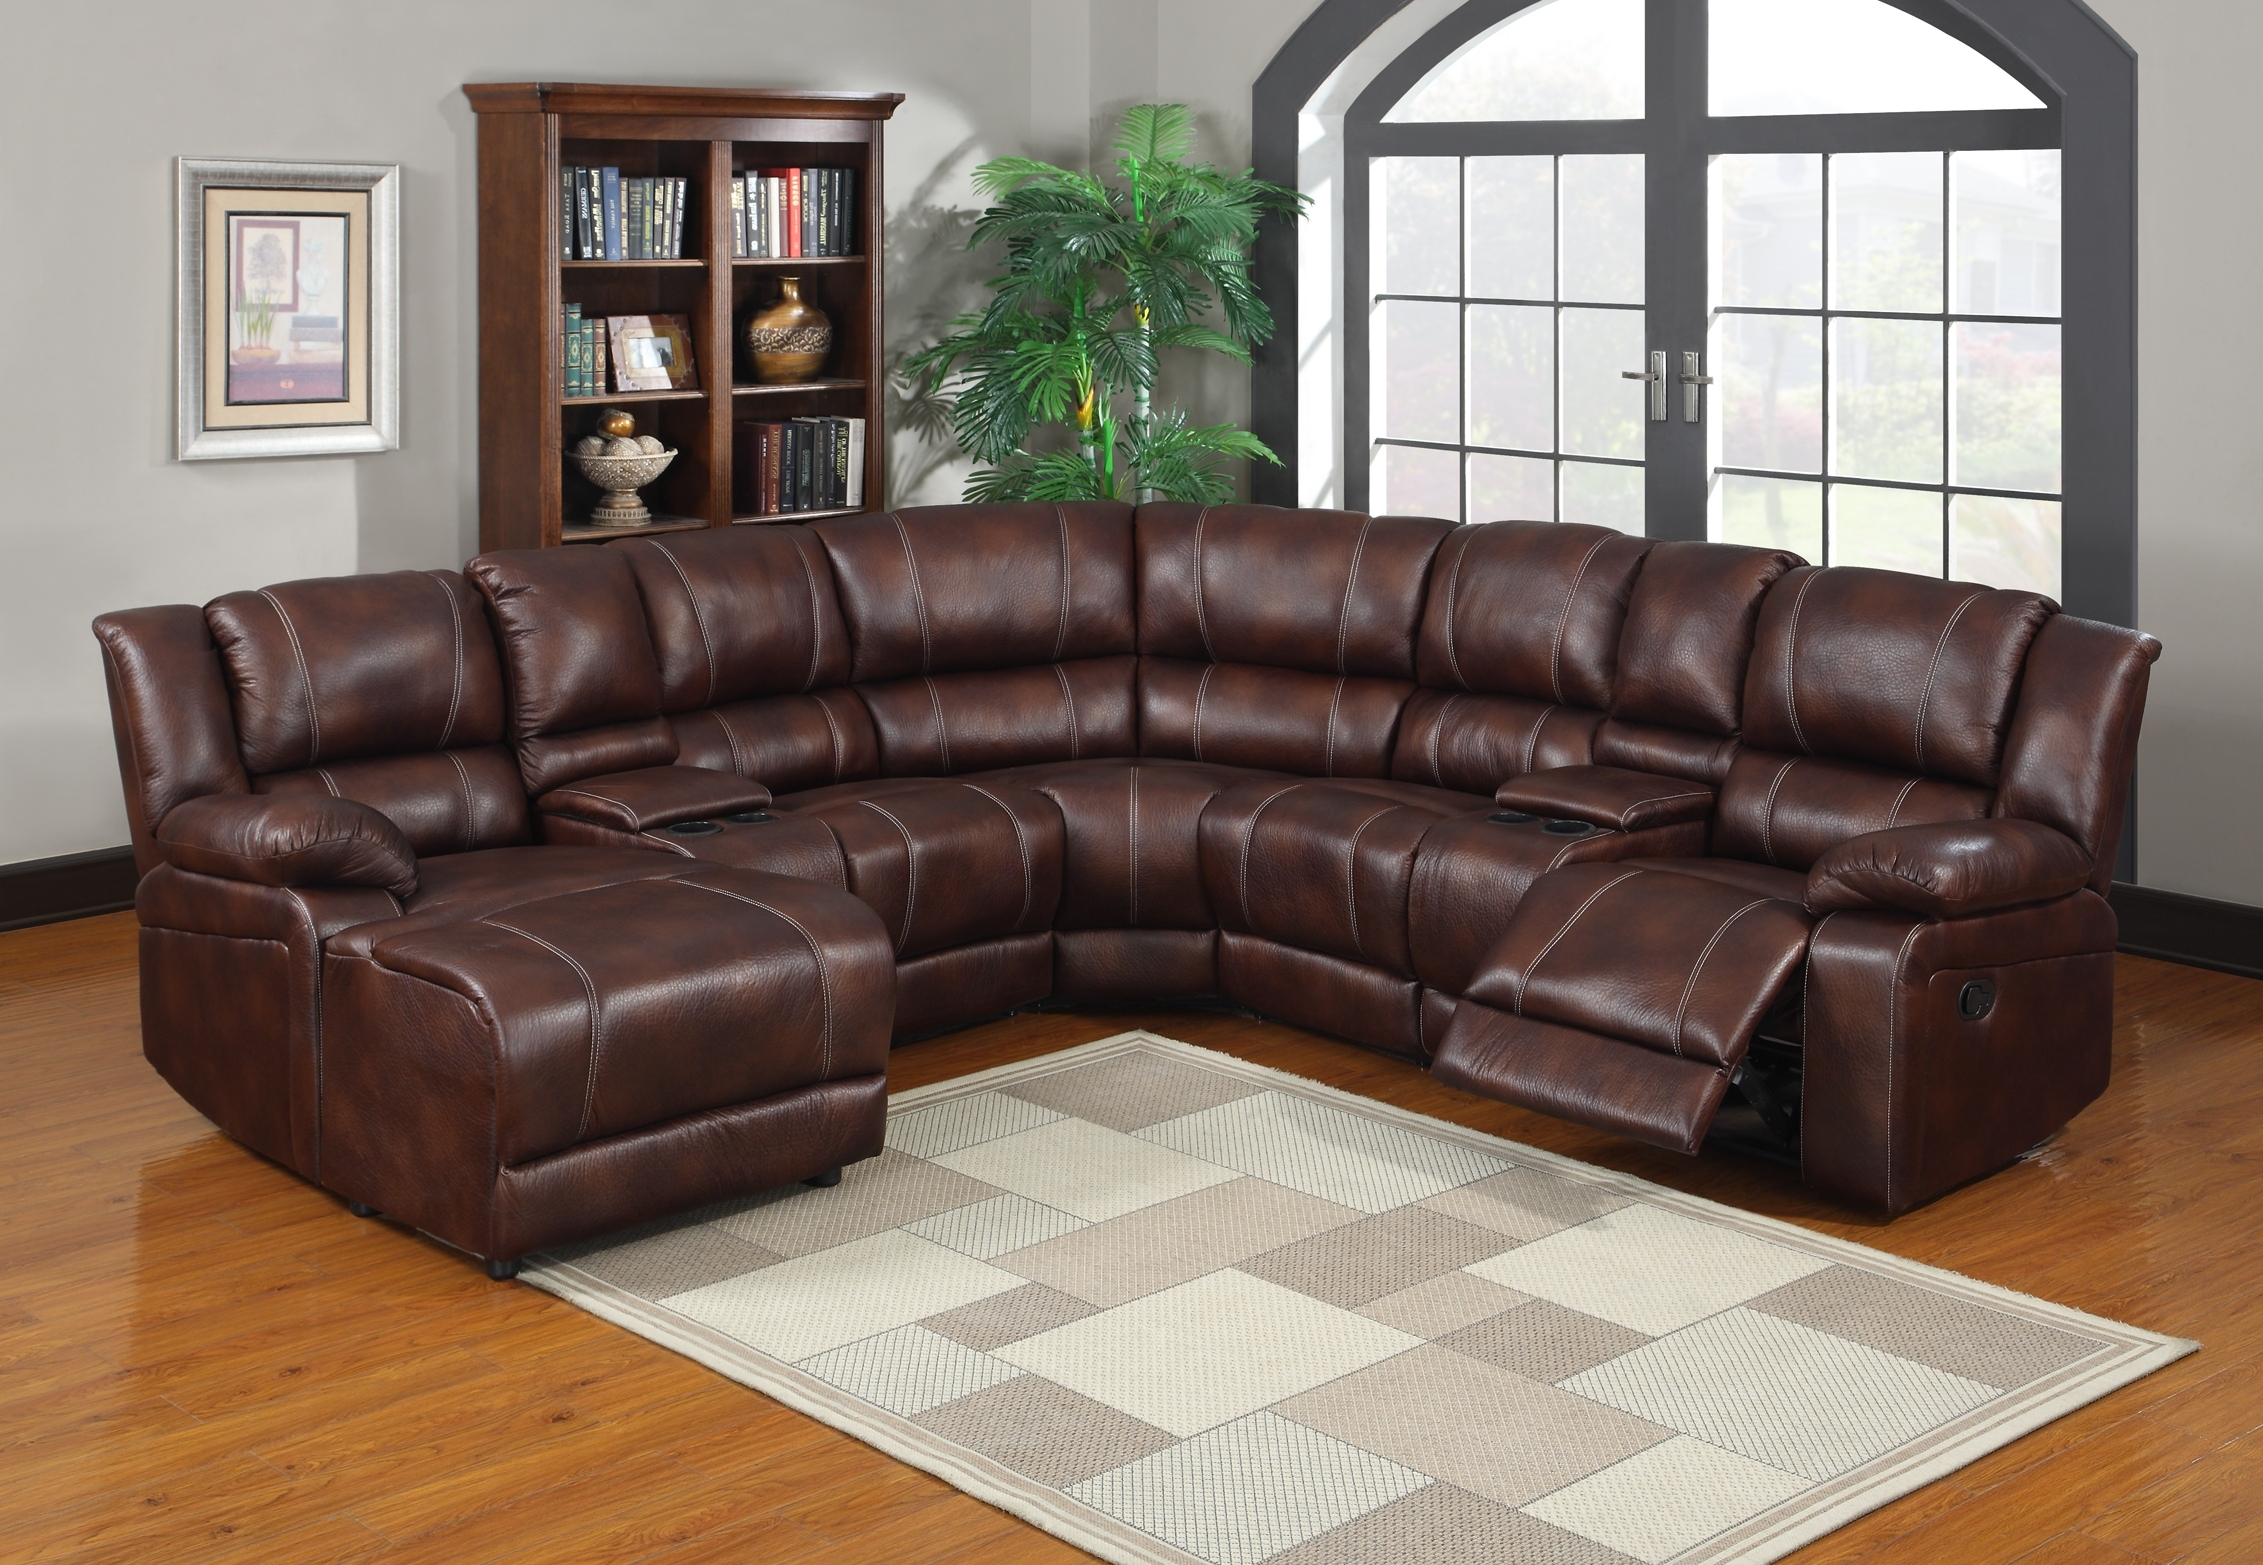 Sectional Sofas With Cup Holders Pertaining To Trendy Contemporary Style Sectional Sofas With Recliners And Cup Holders (View 7 of 15)